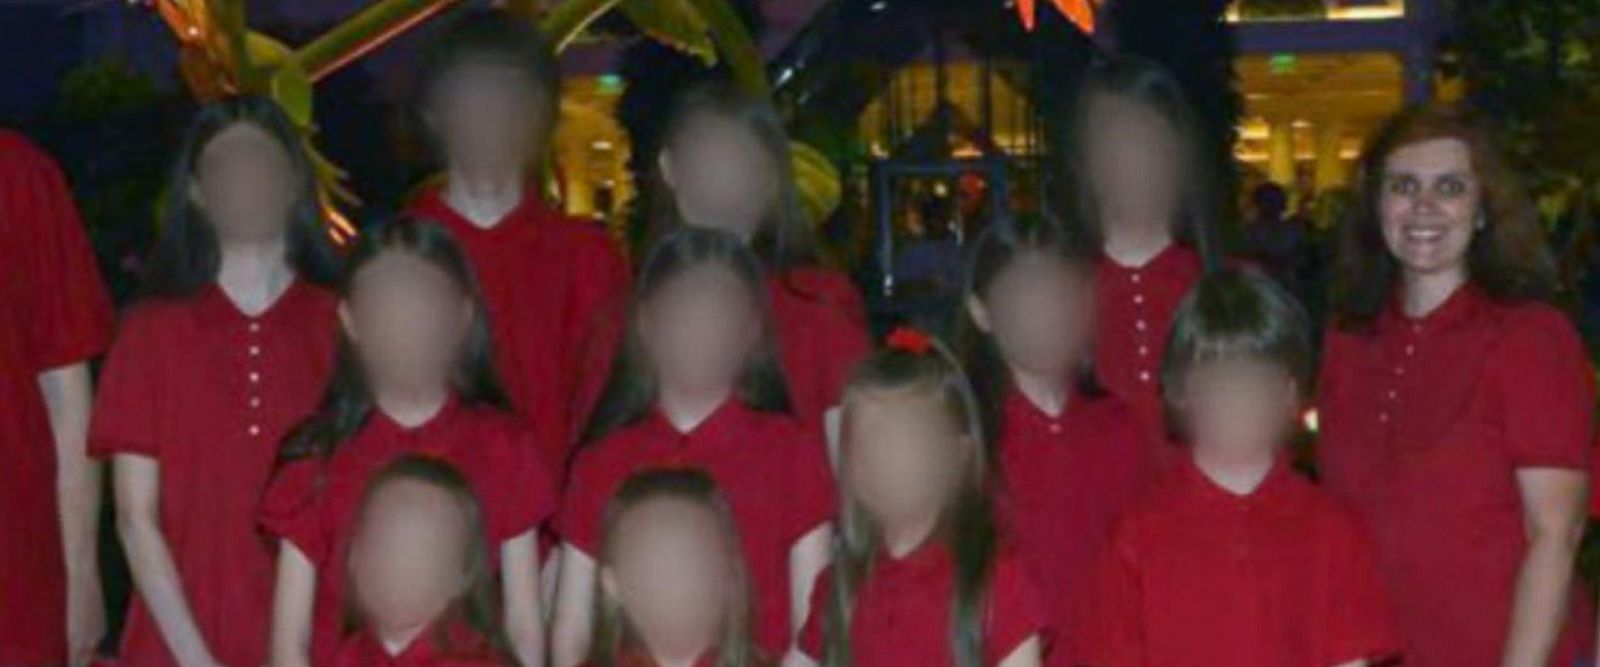 VIDEO: 13 siblings allegedly held captive at home by parents: Part 1